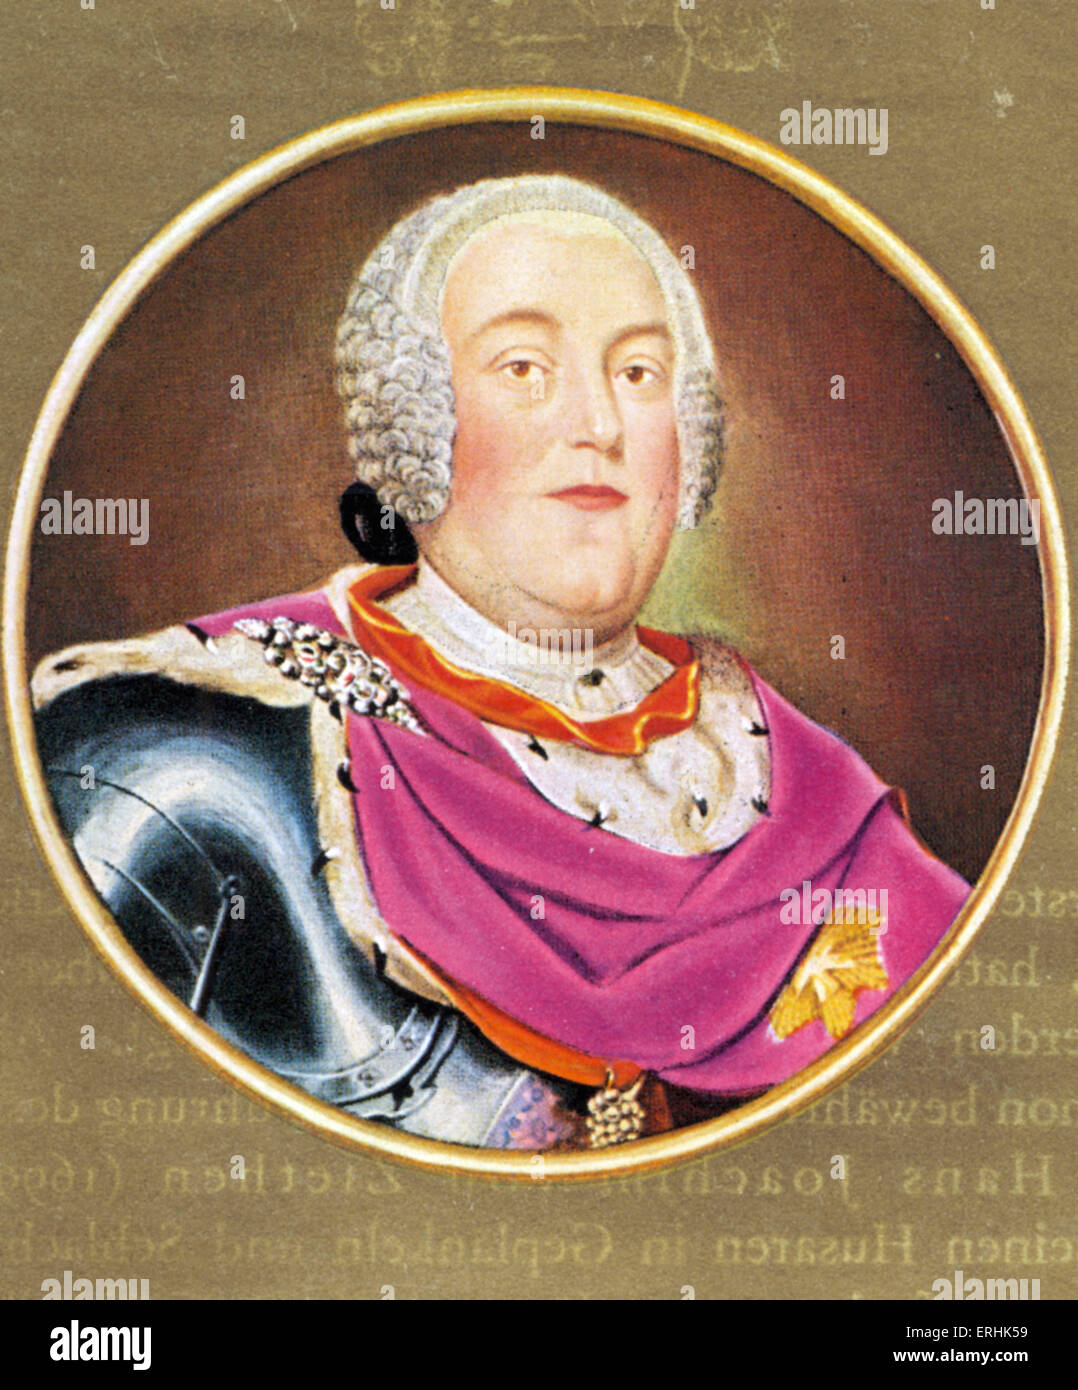 Augustus III the Saxon. Portrait of the Elector of Saxony and King of Poland. Also known as Frederick Augustus II. - Stock Image